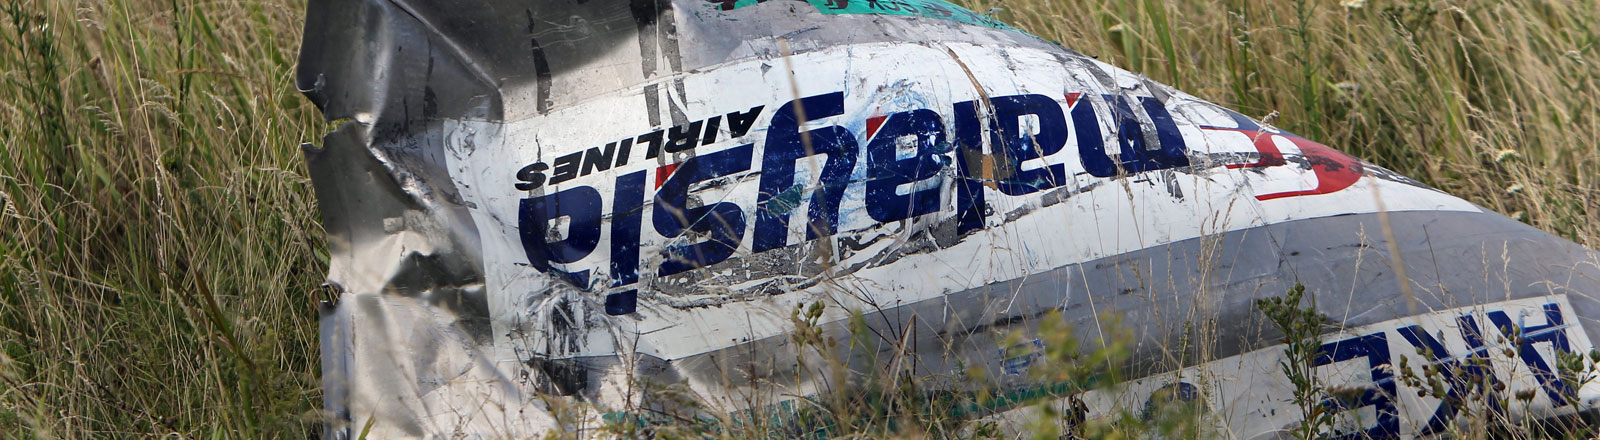 Ein Teil des Malaysian-Airline-Linienflugs MH17